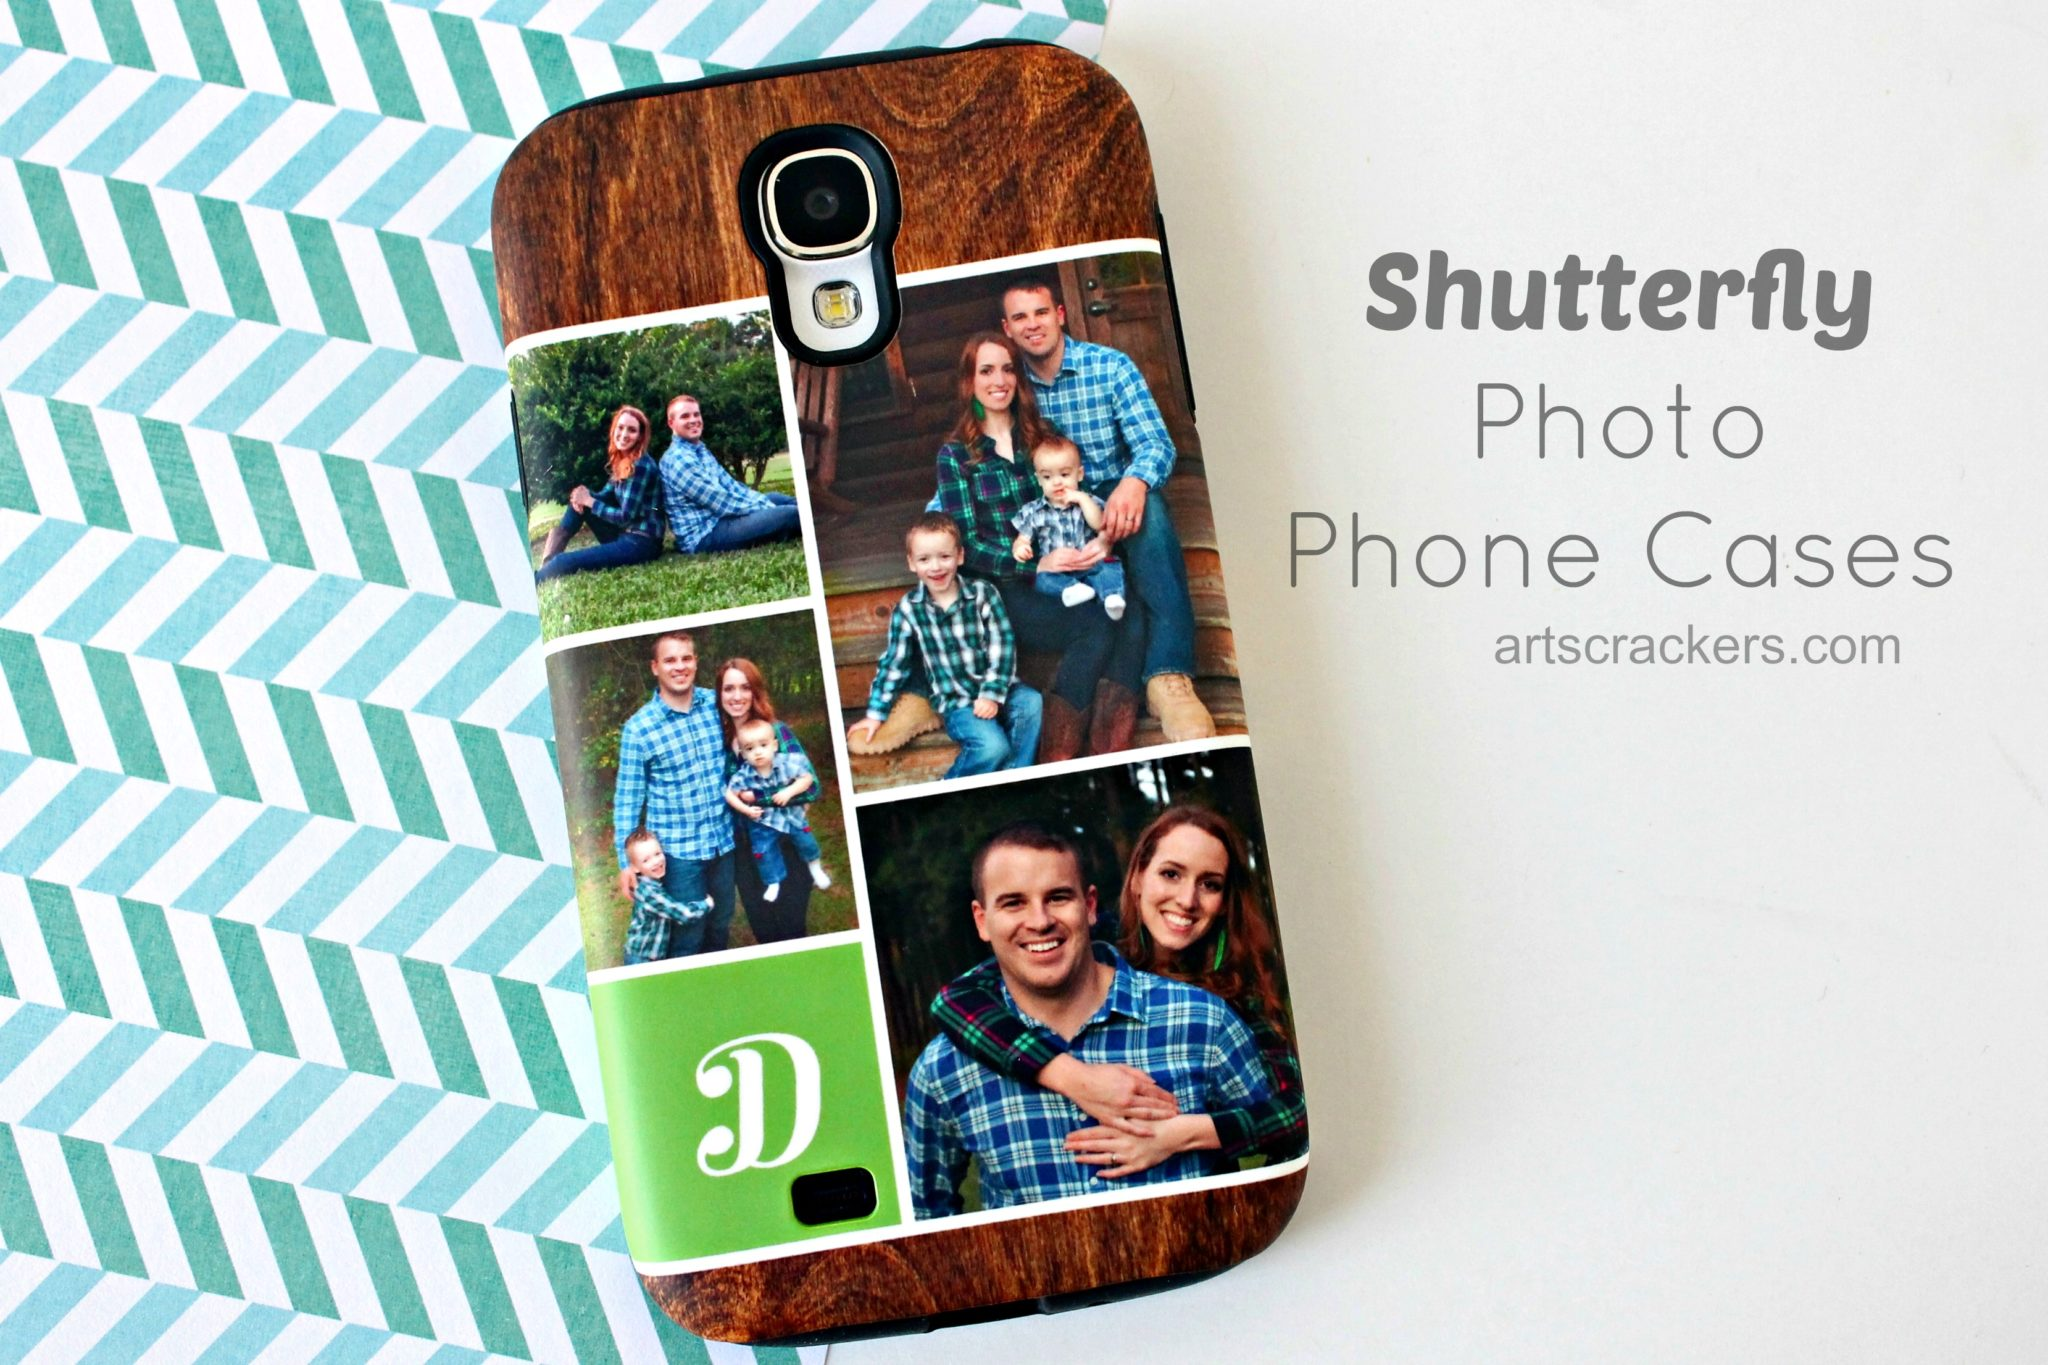 Shutterfly Photo Phone Cases. Click the picture to learn more.